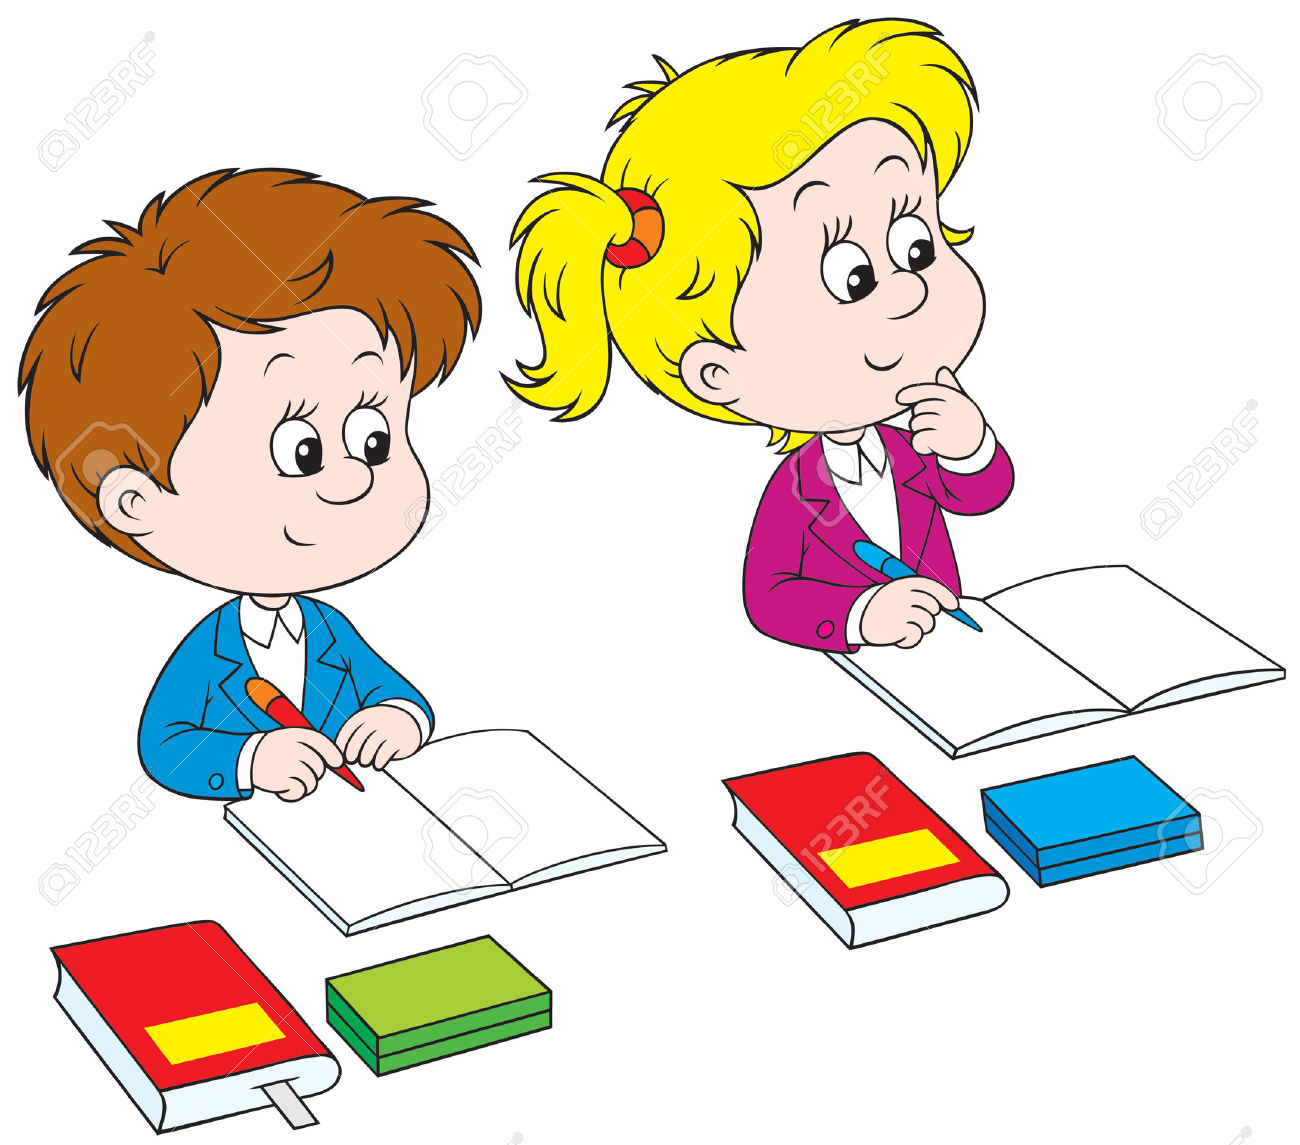 ... Writing Clipart Schoolchildren Royalty Free Cliparts Vectors And Stock: https://clipartion.com/free-clipart-20790